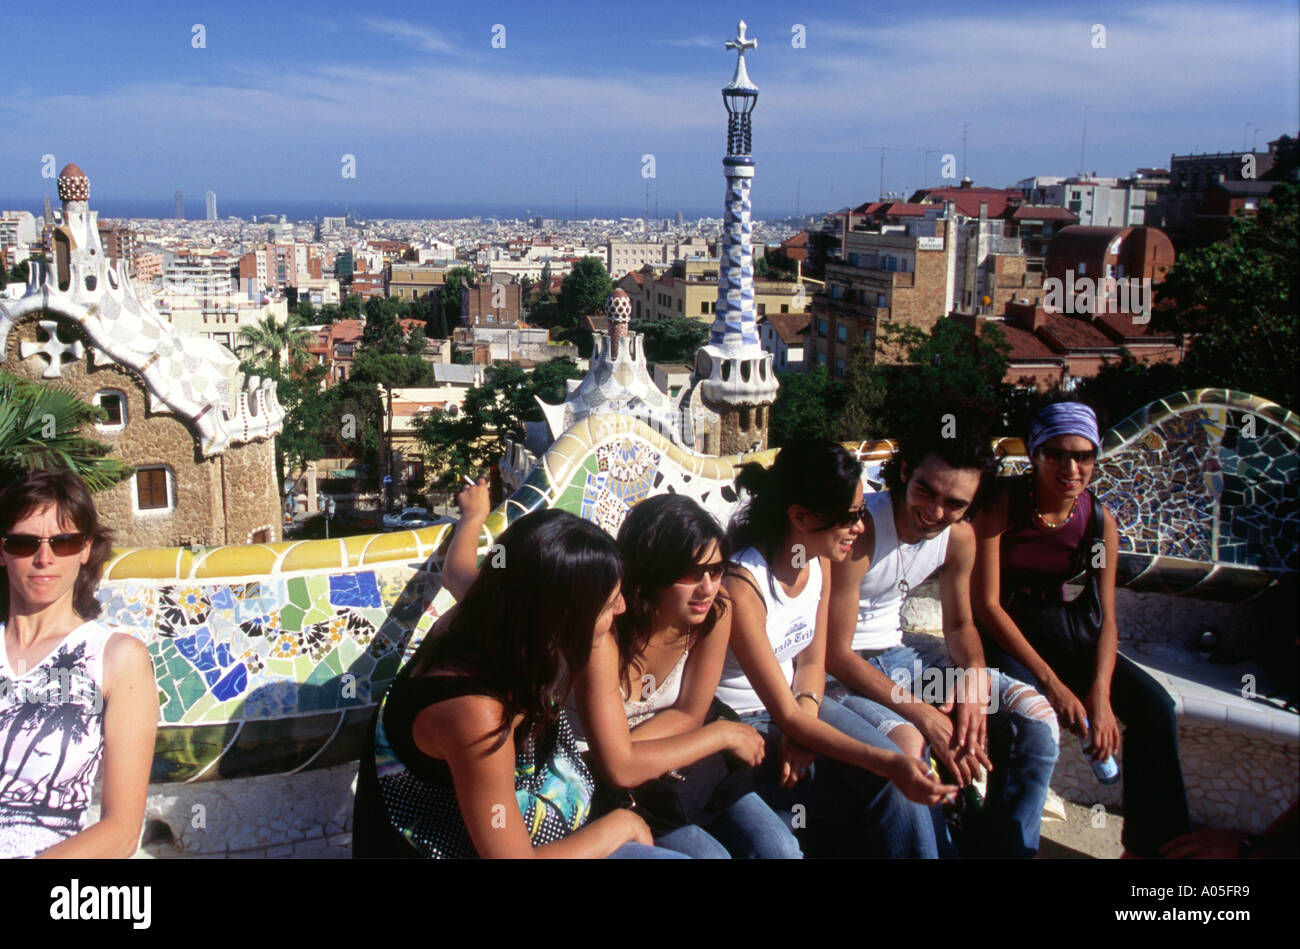 Barcelona Parc Guell by Gaudi public parc with colorful masaics people teenager Stock Photo